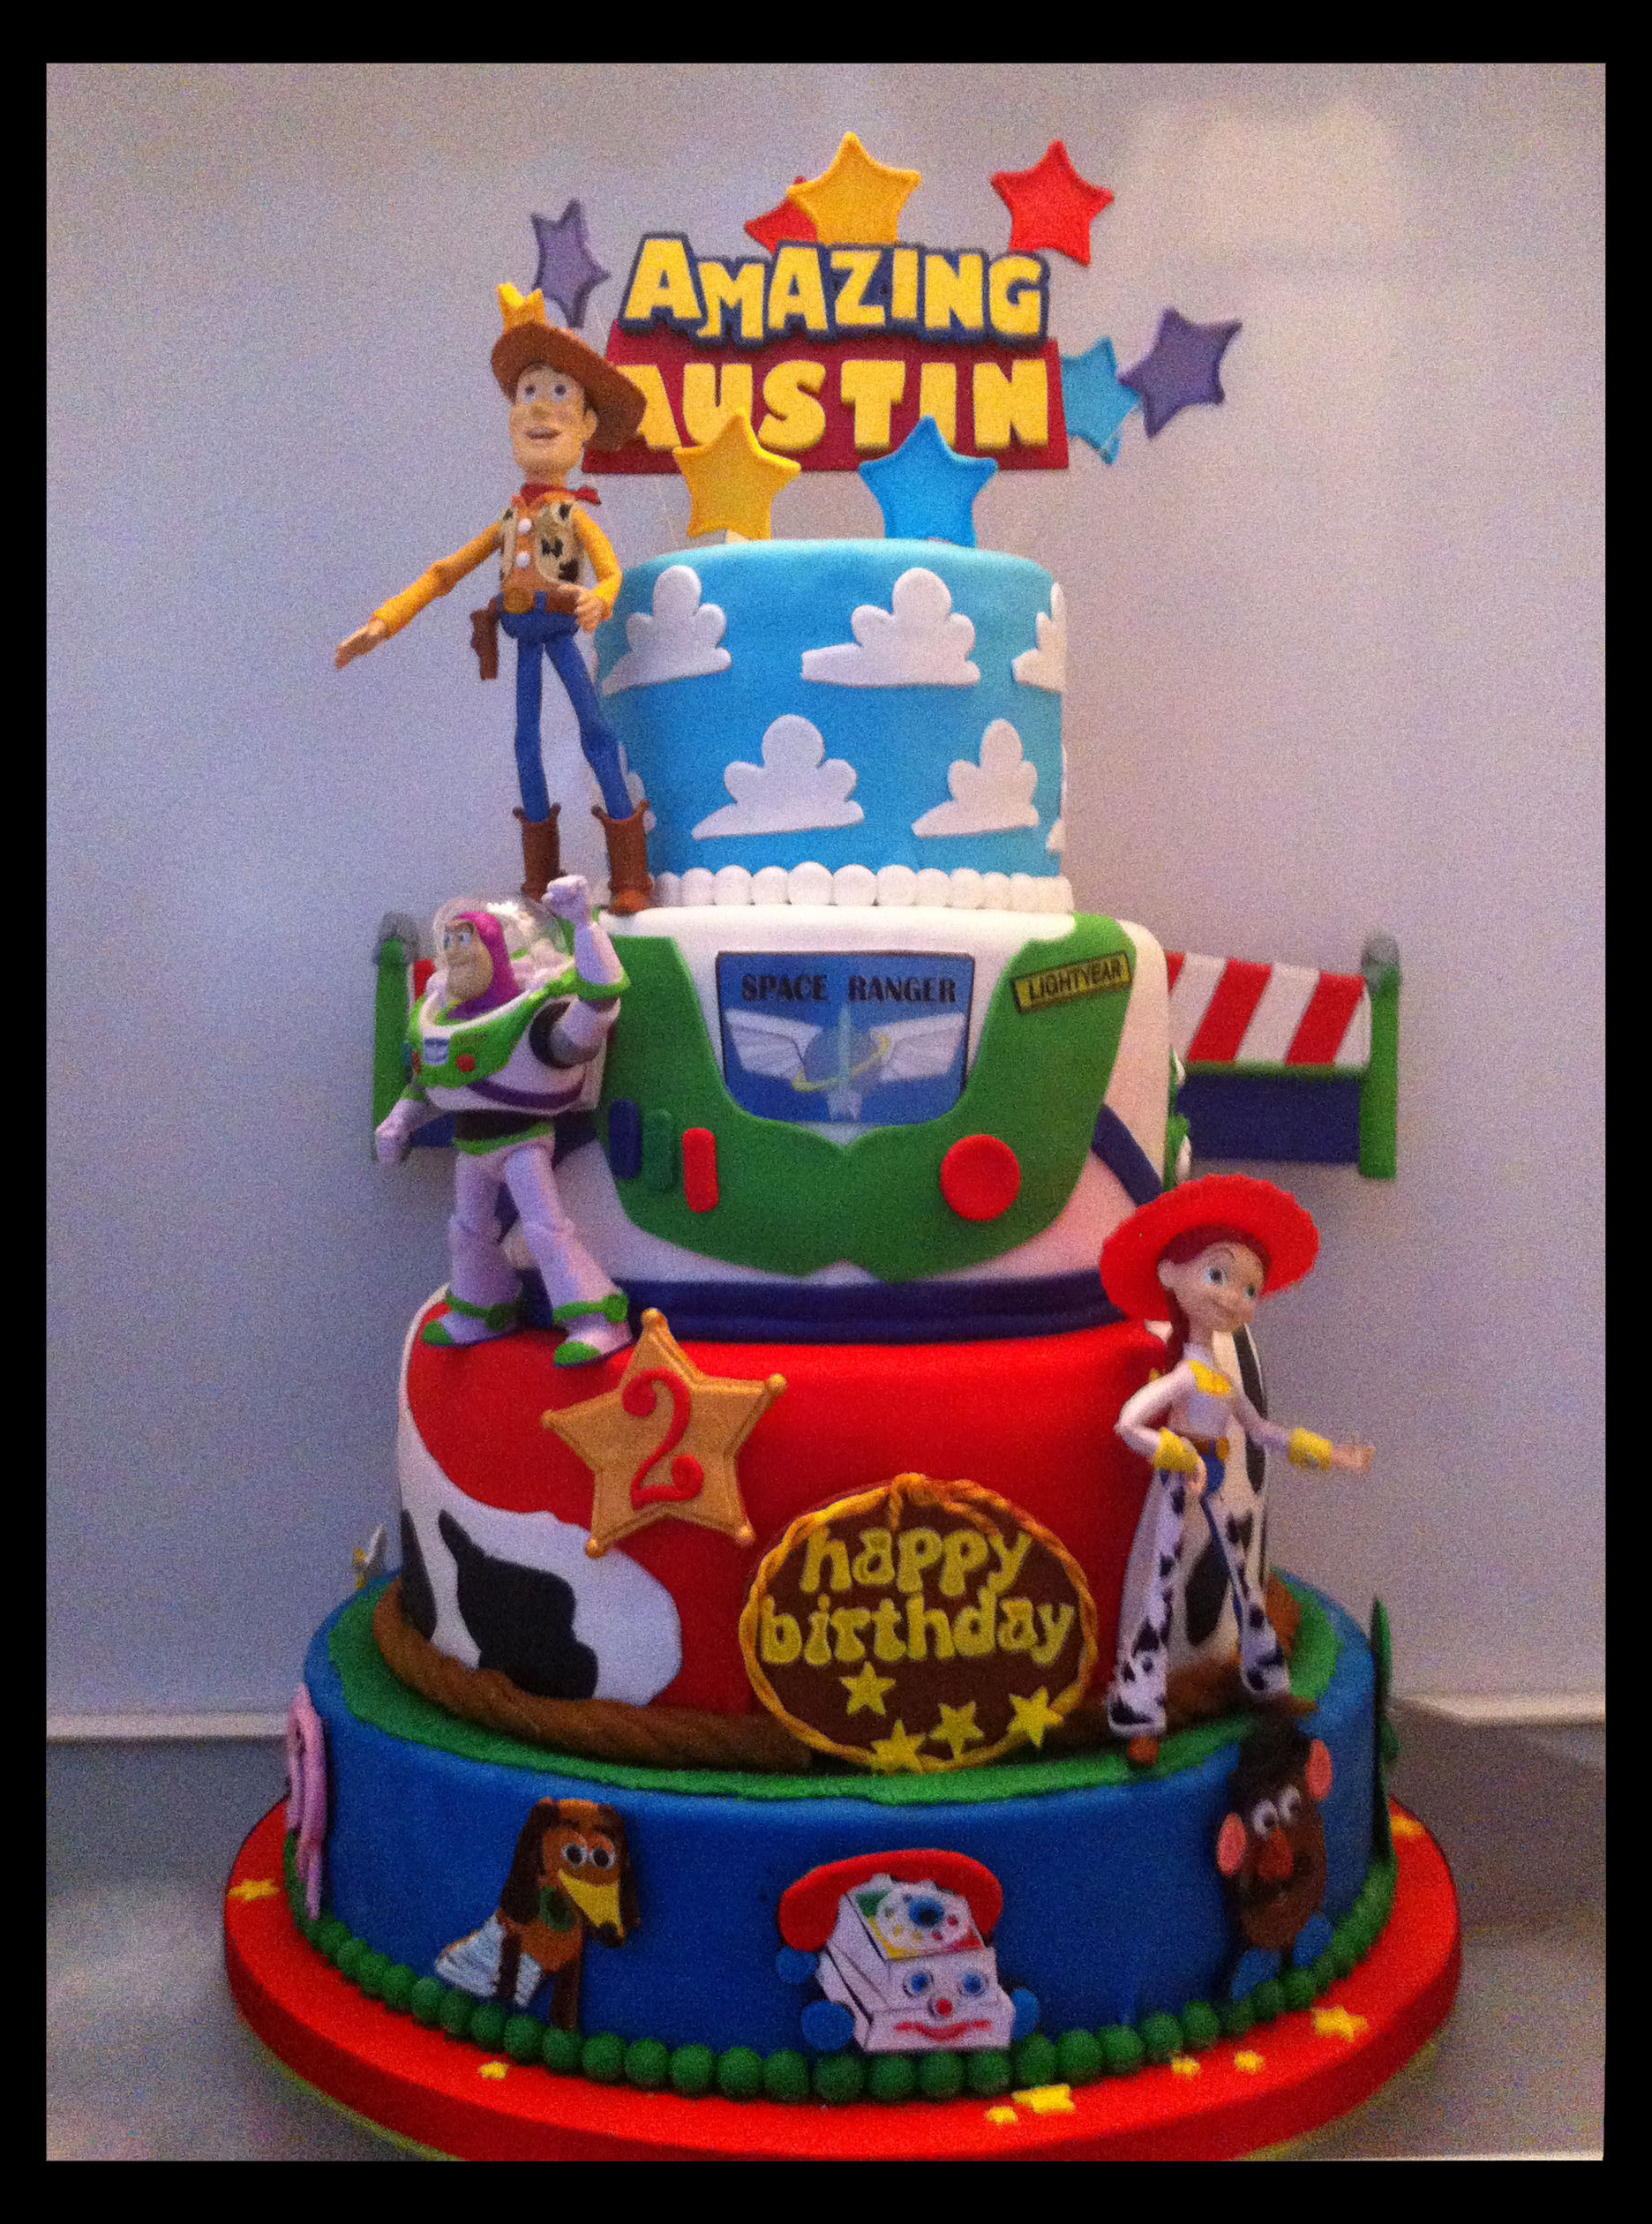 Amazing Austins Toy Story Birthday Cake Maddies Cakes